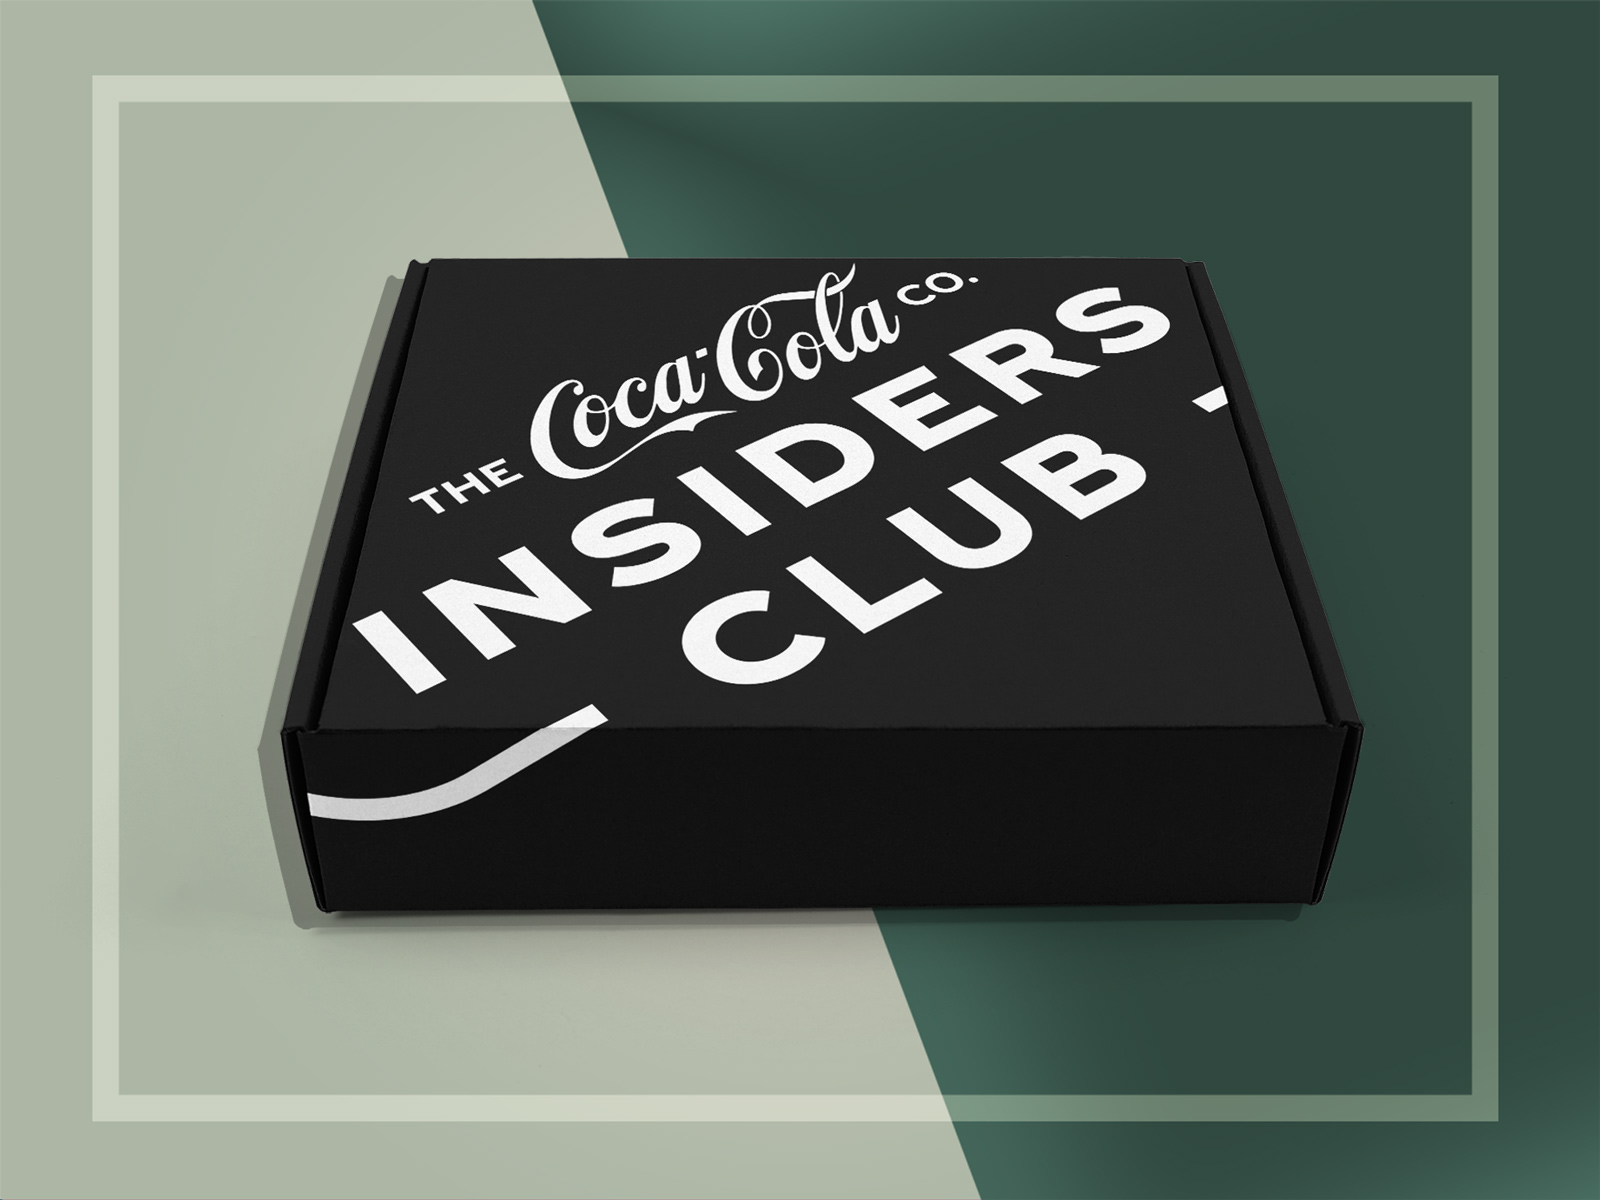 coca-cola-insiders-club-closed-FT-BLOG1219.jpg